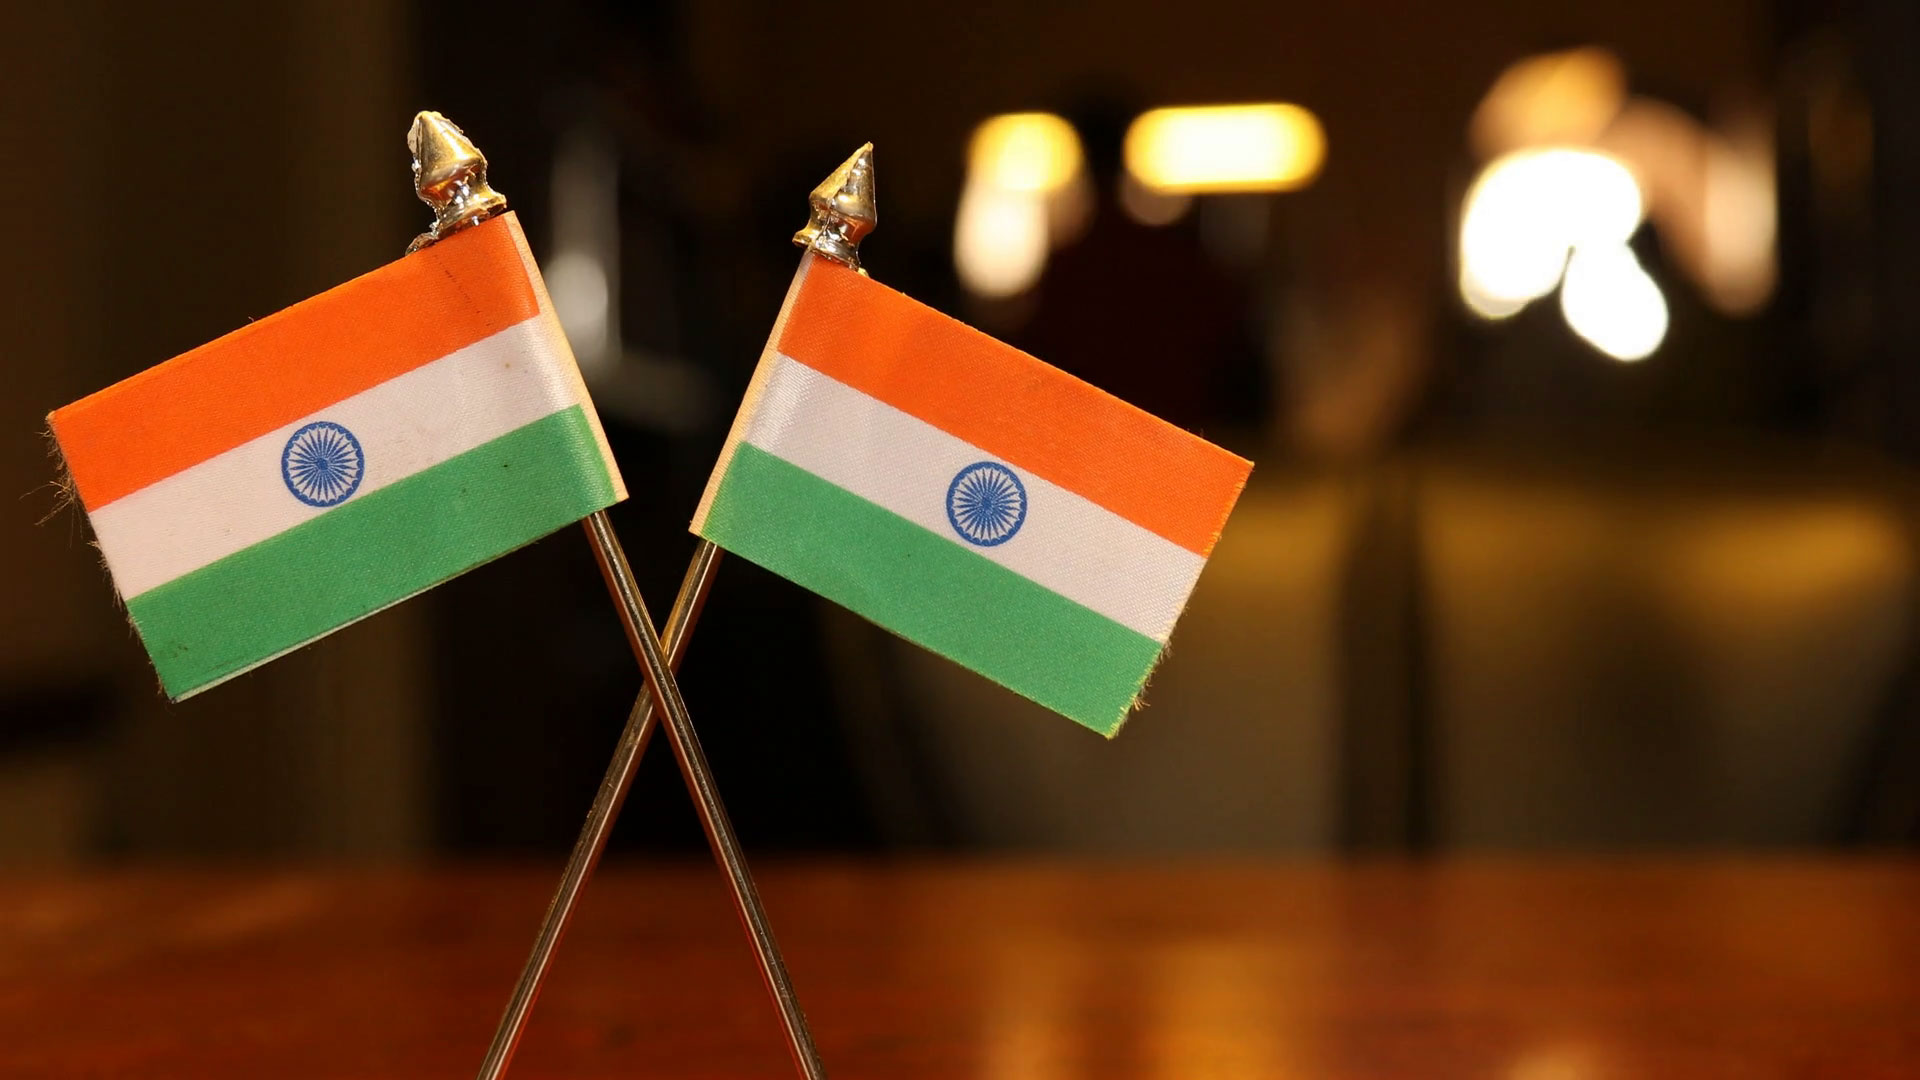 Indian flag images photos pictures and wallpapers free download atulhost - Indian flag 4k wallpaper ...